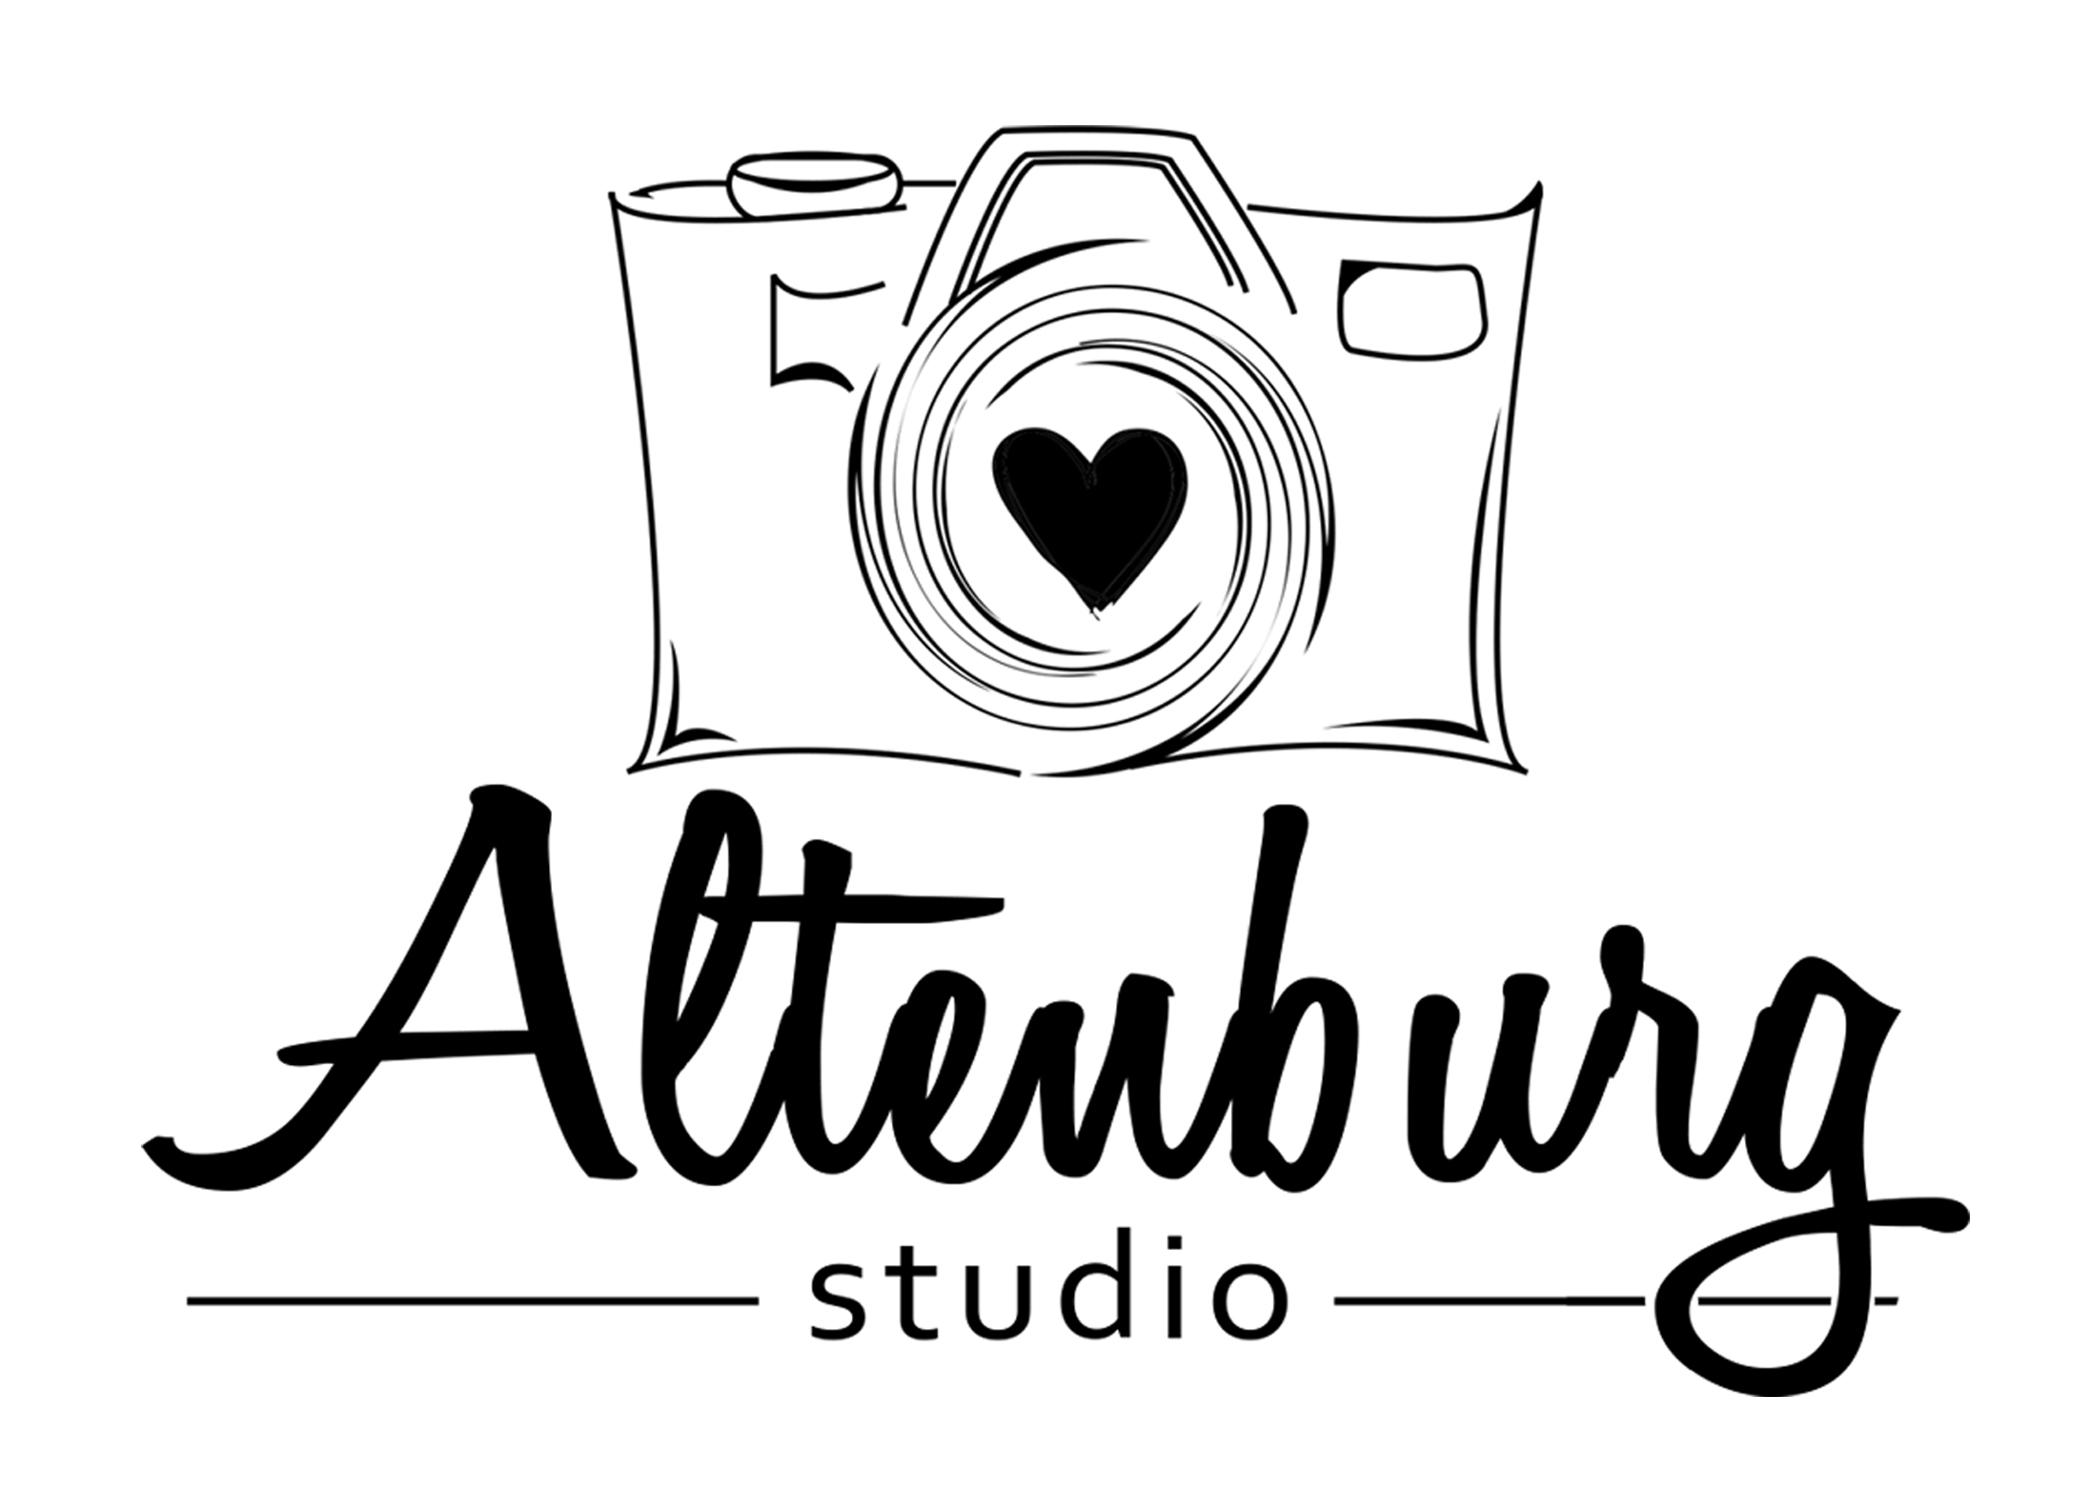 Altenburg Studio logo white